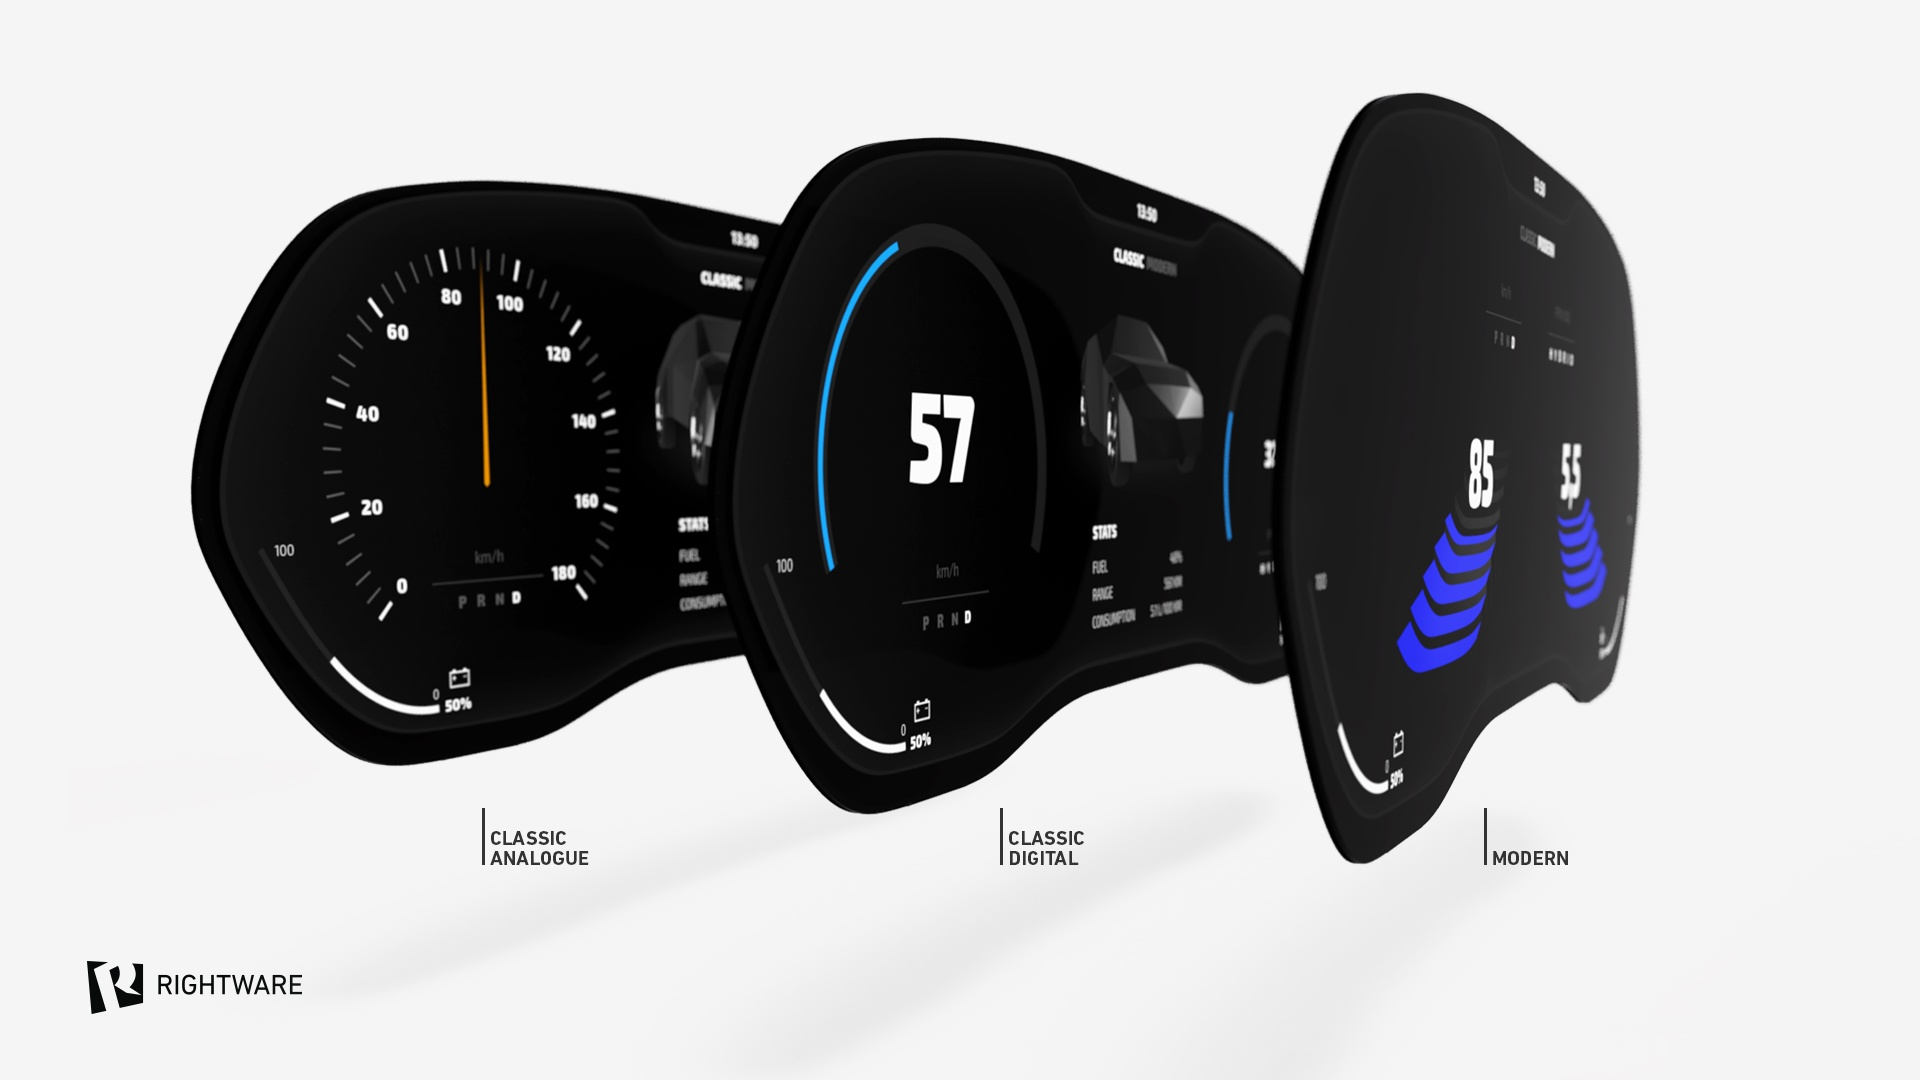 Rightware Has Released KanziR 35 A Feature Release Of Its Leading UI Design And Development Tool For Automotive Other Embedded Markets